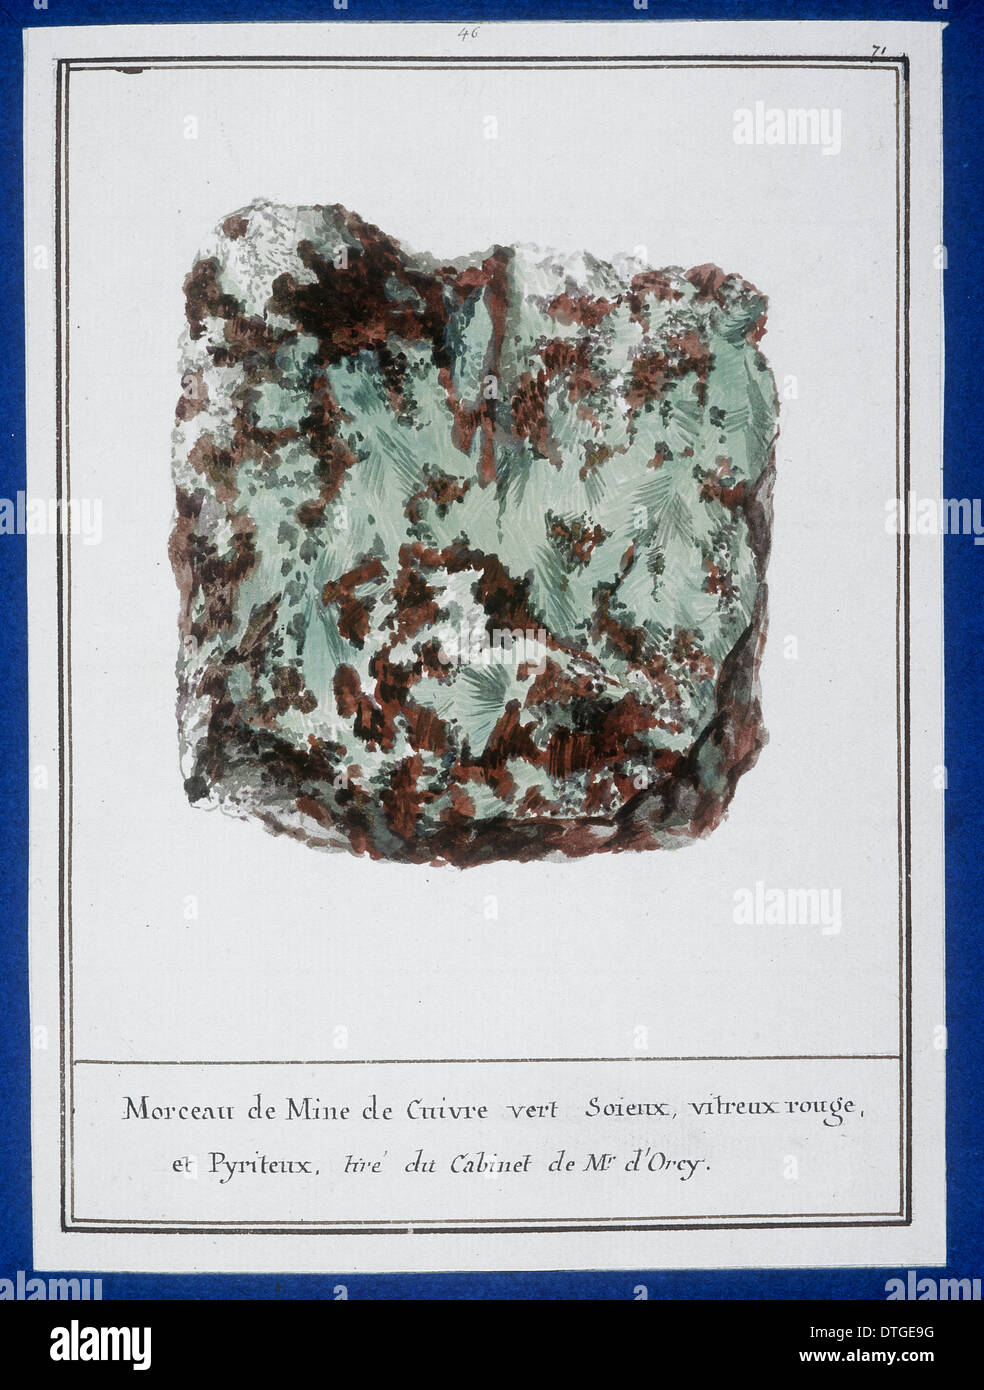 Plate 41 from Mineralogie by Swebach Desfontaines - Stock Image